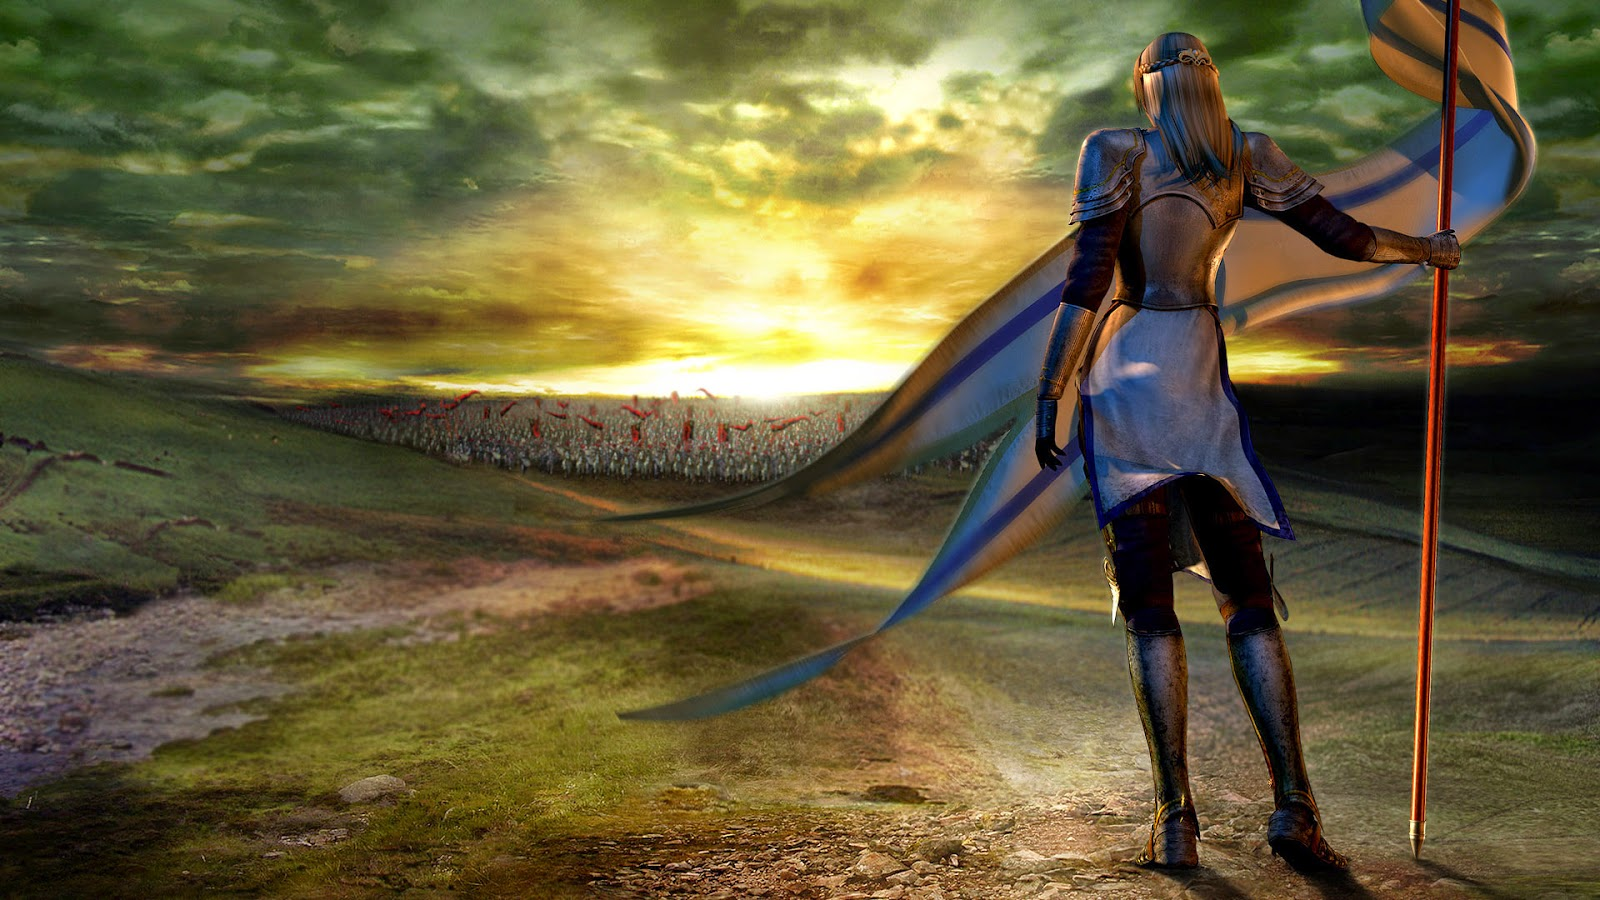 Armyname 3d Hd Wallpaper: Warrior Women With Army 3D Wallpaper